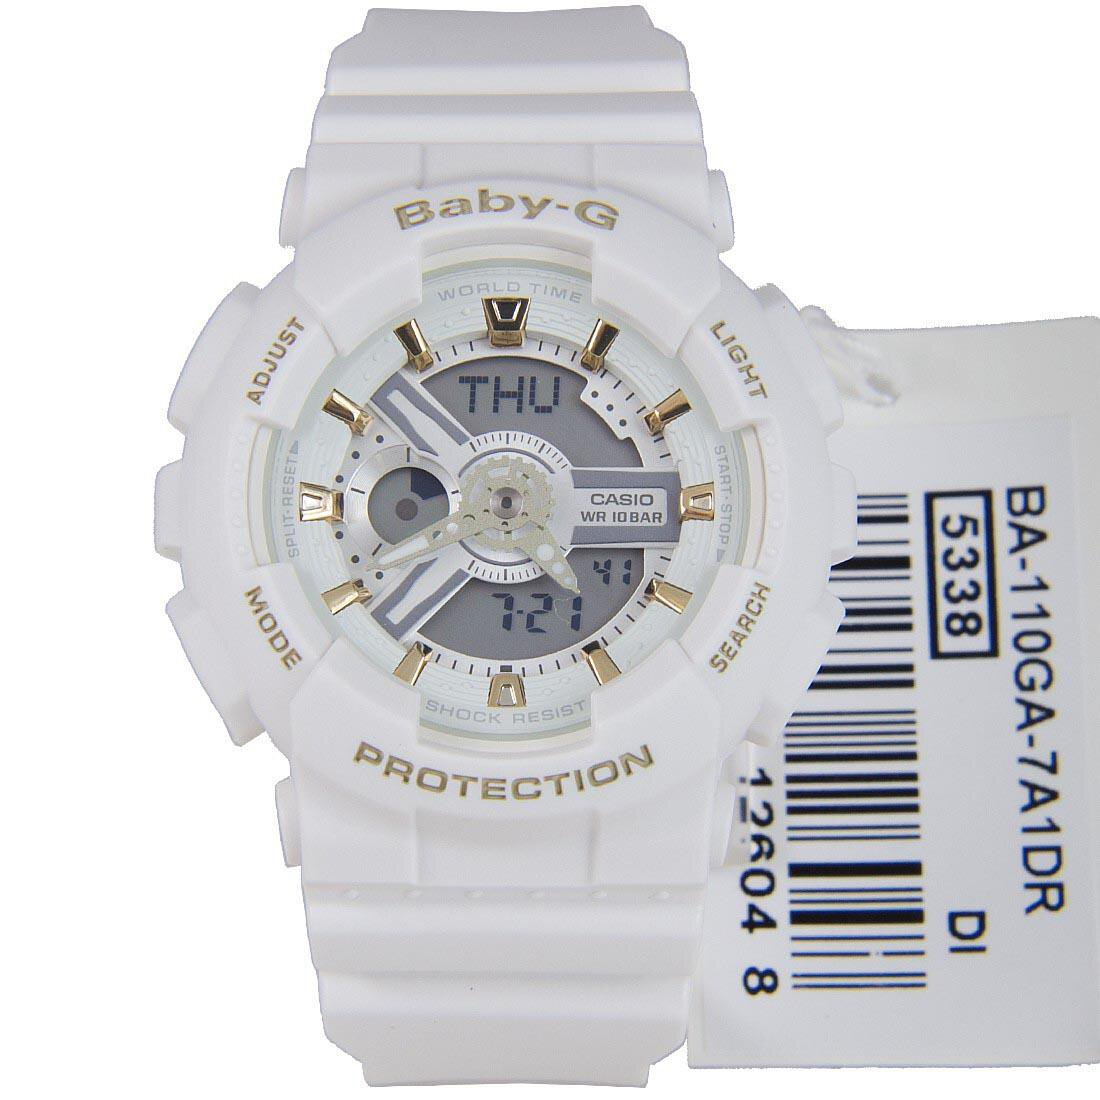 Buy Casio Baby G Ba 110ga 7a1 White X Gold Watch 110sn 3a